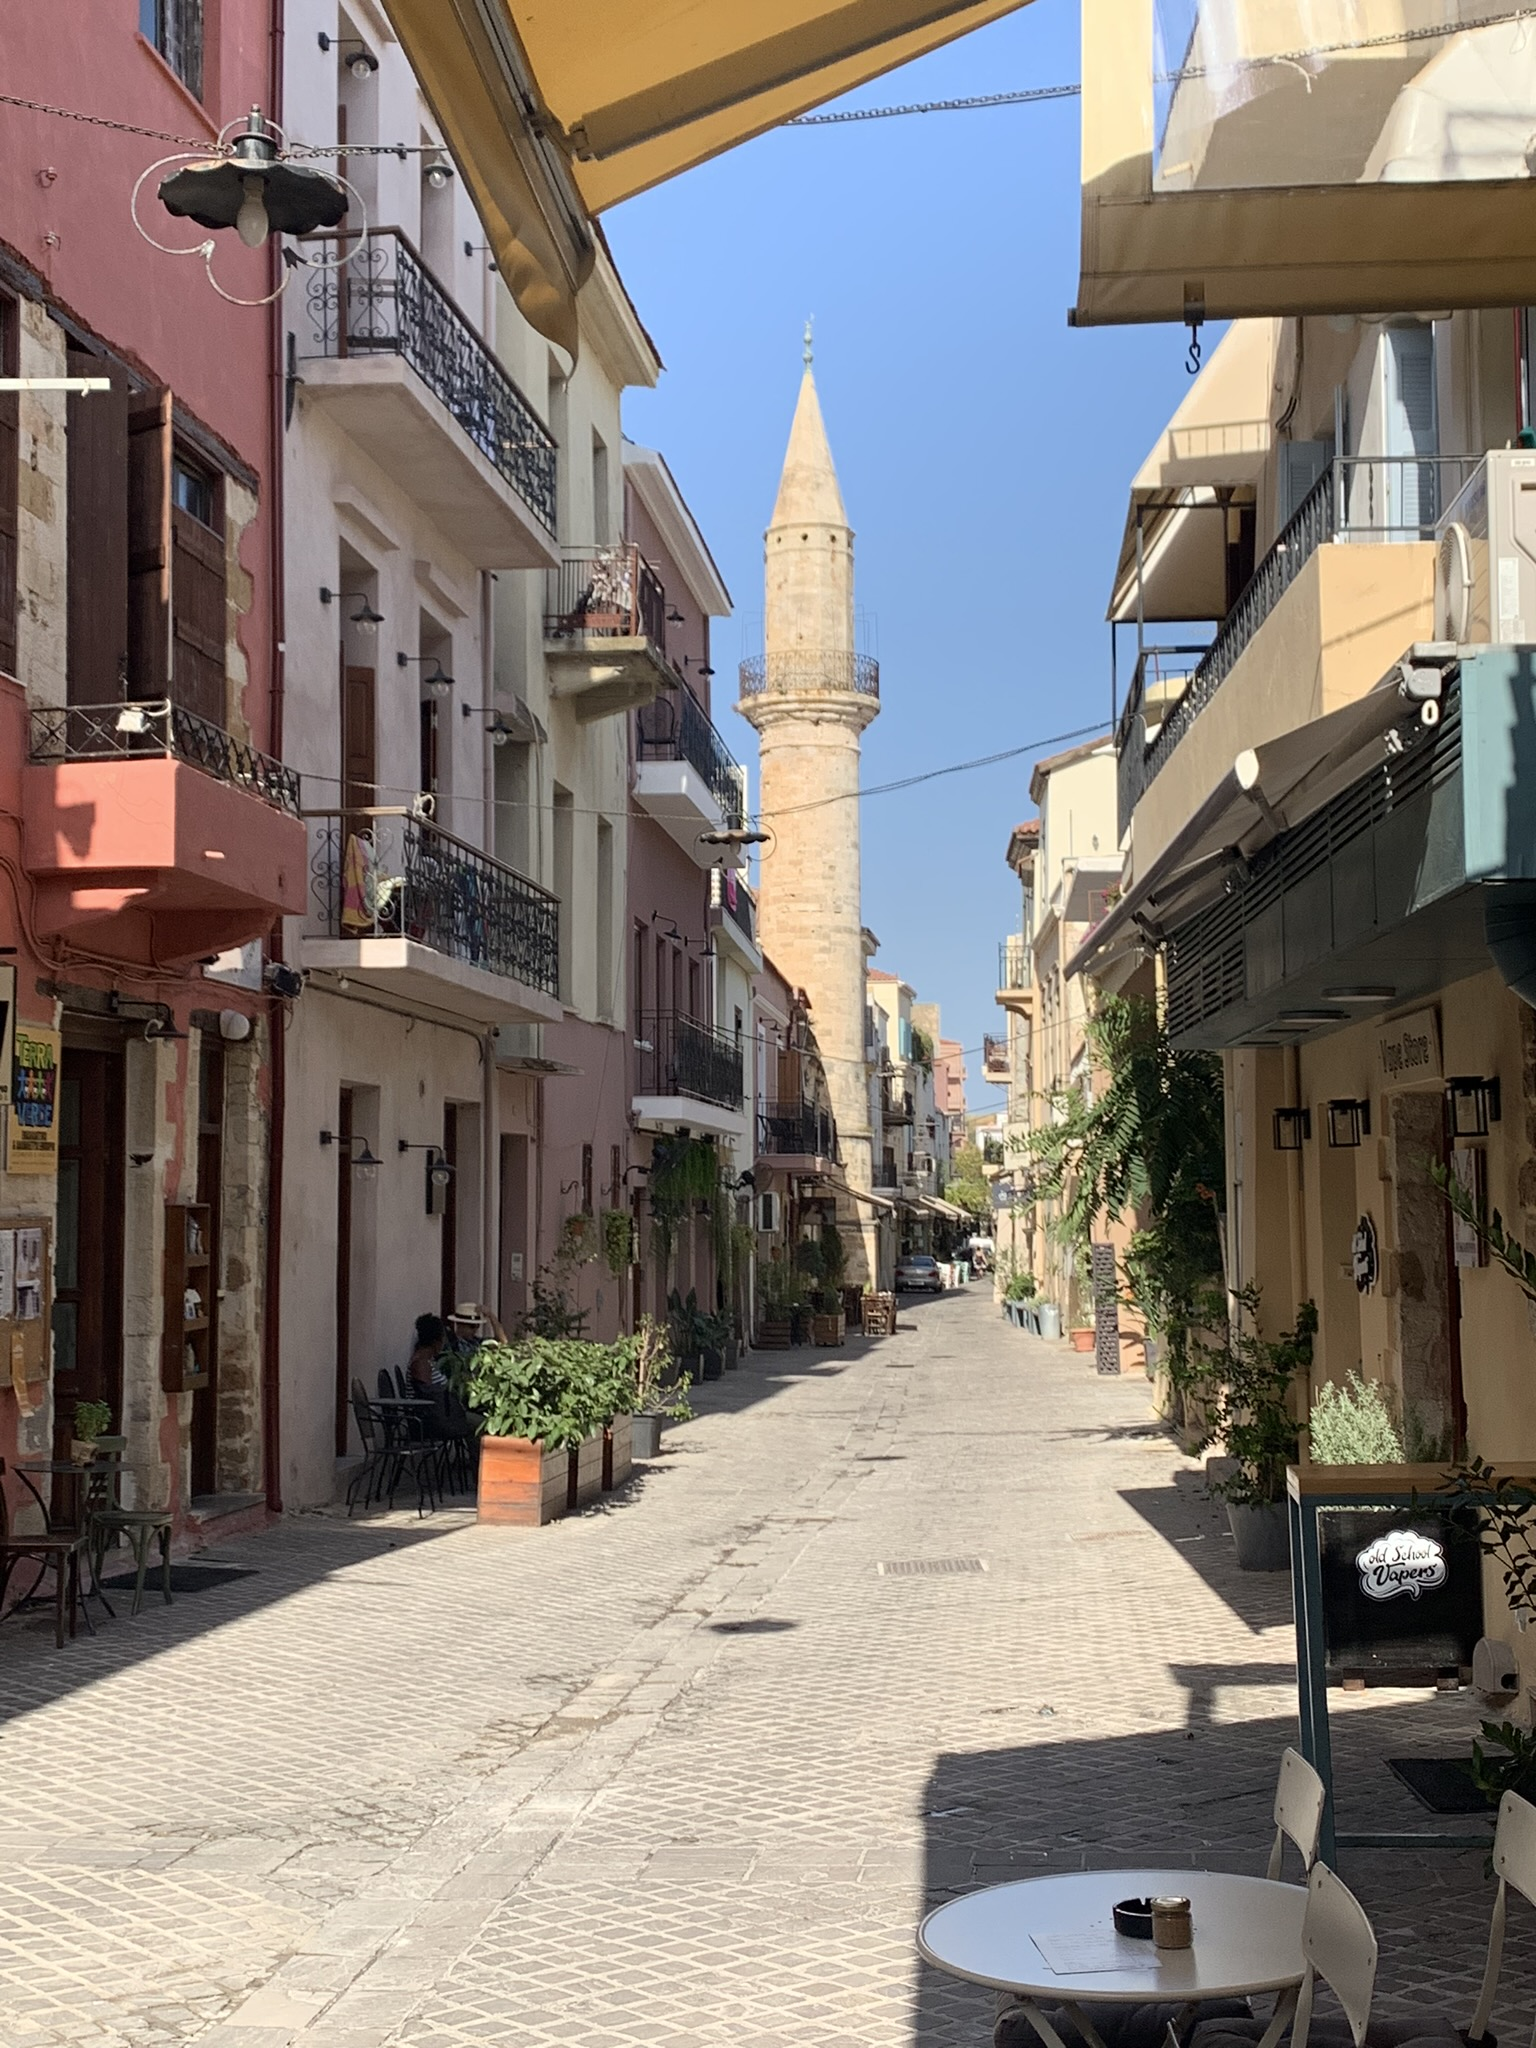 narrow street in the city of chania in crete greece